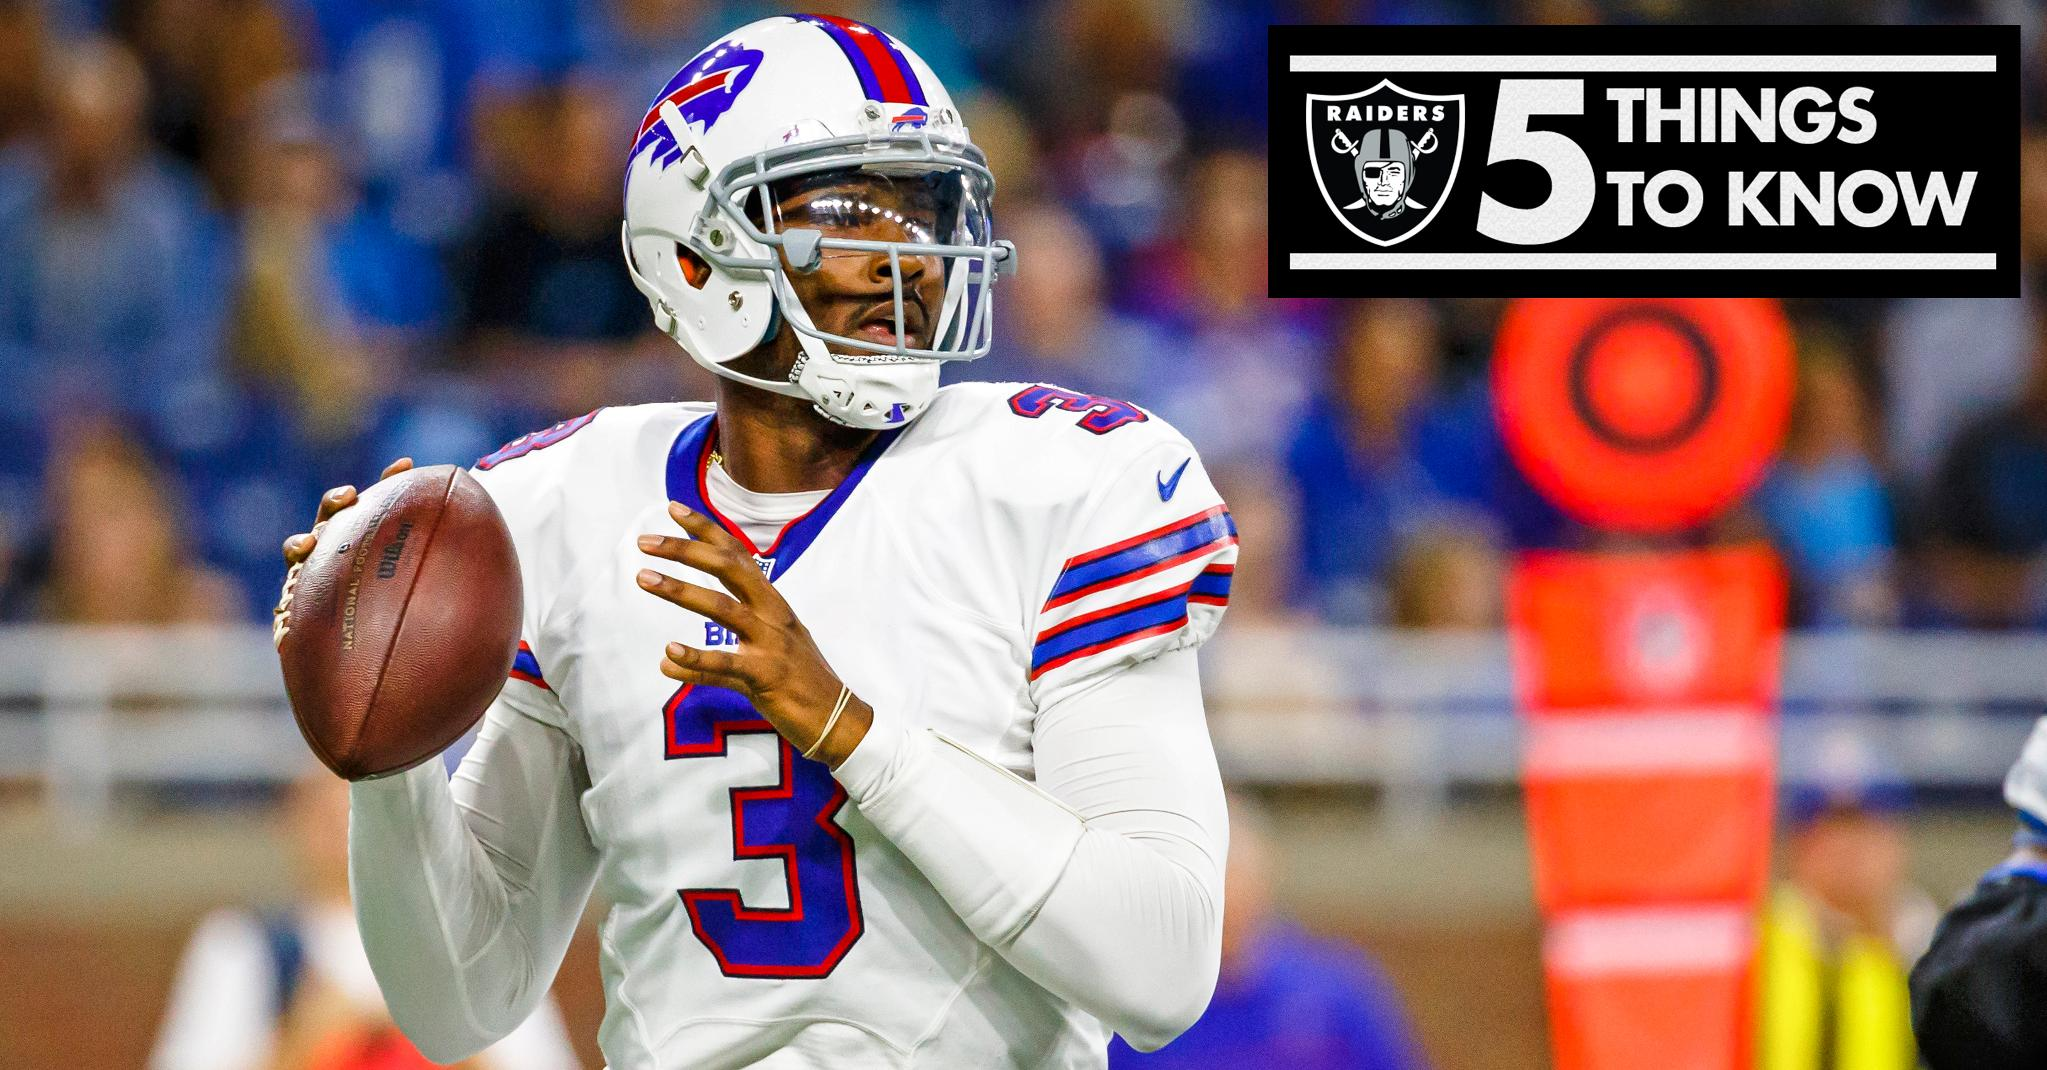 Get to know our newest signee @EJManuel3.  5 Things To Know: https://t.co/Tw8iMoDxpw https://t.co/p68yXHtiCF